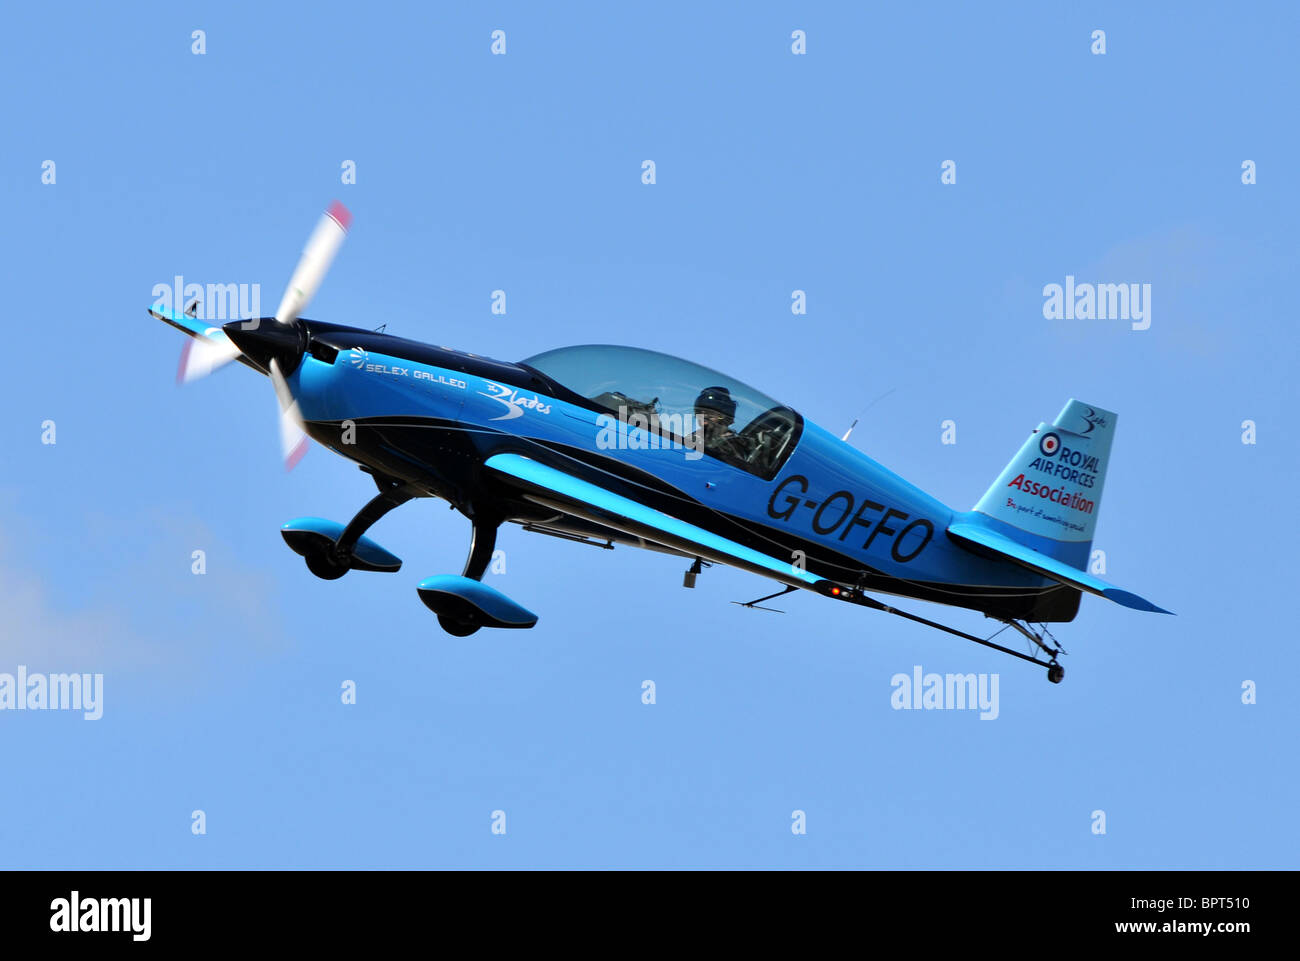 EA300L, Extra Flugzeugbau EA300L, The Blades display aircraft EA300L - Stock Image